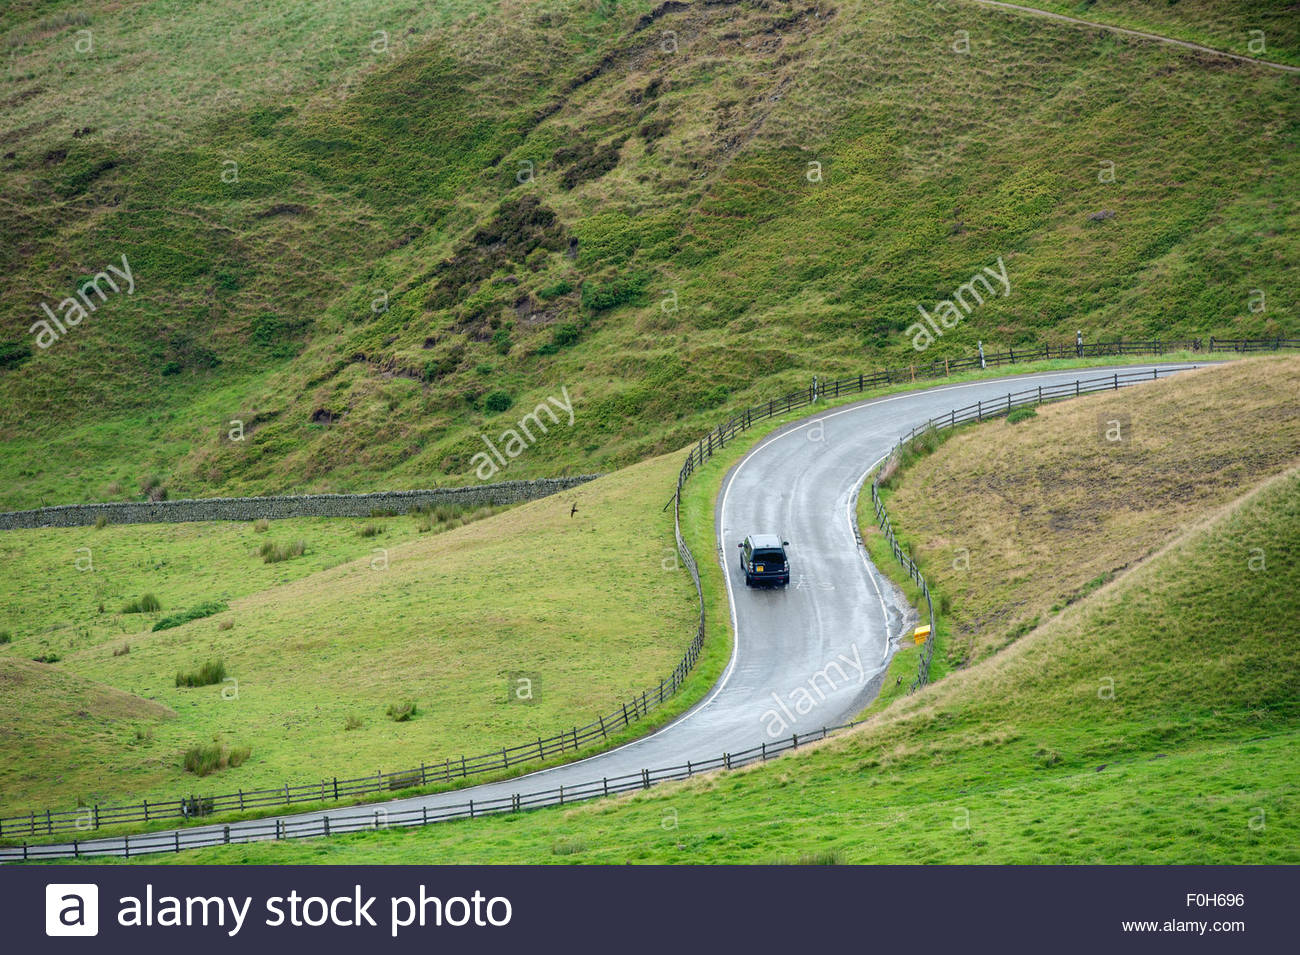 Edale Derbyshire UK. S-bend on a rural road passing through the Peak District National Park - Stock Image